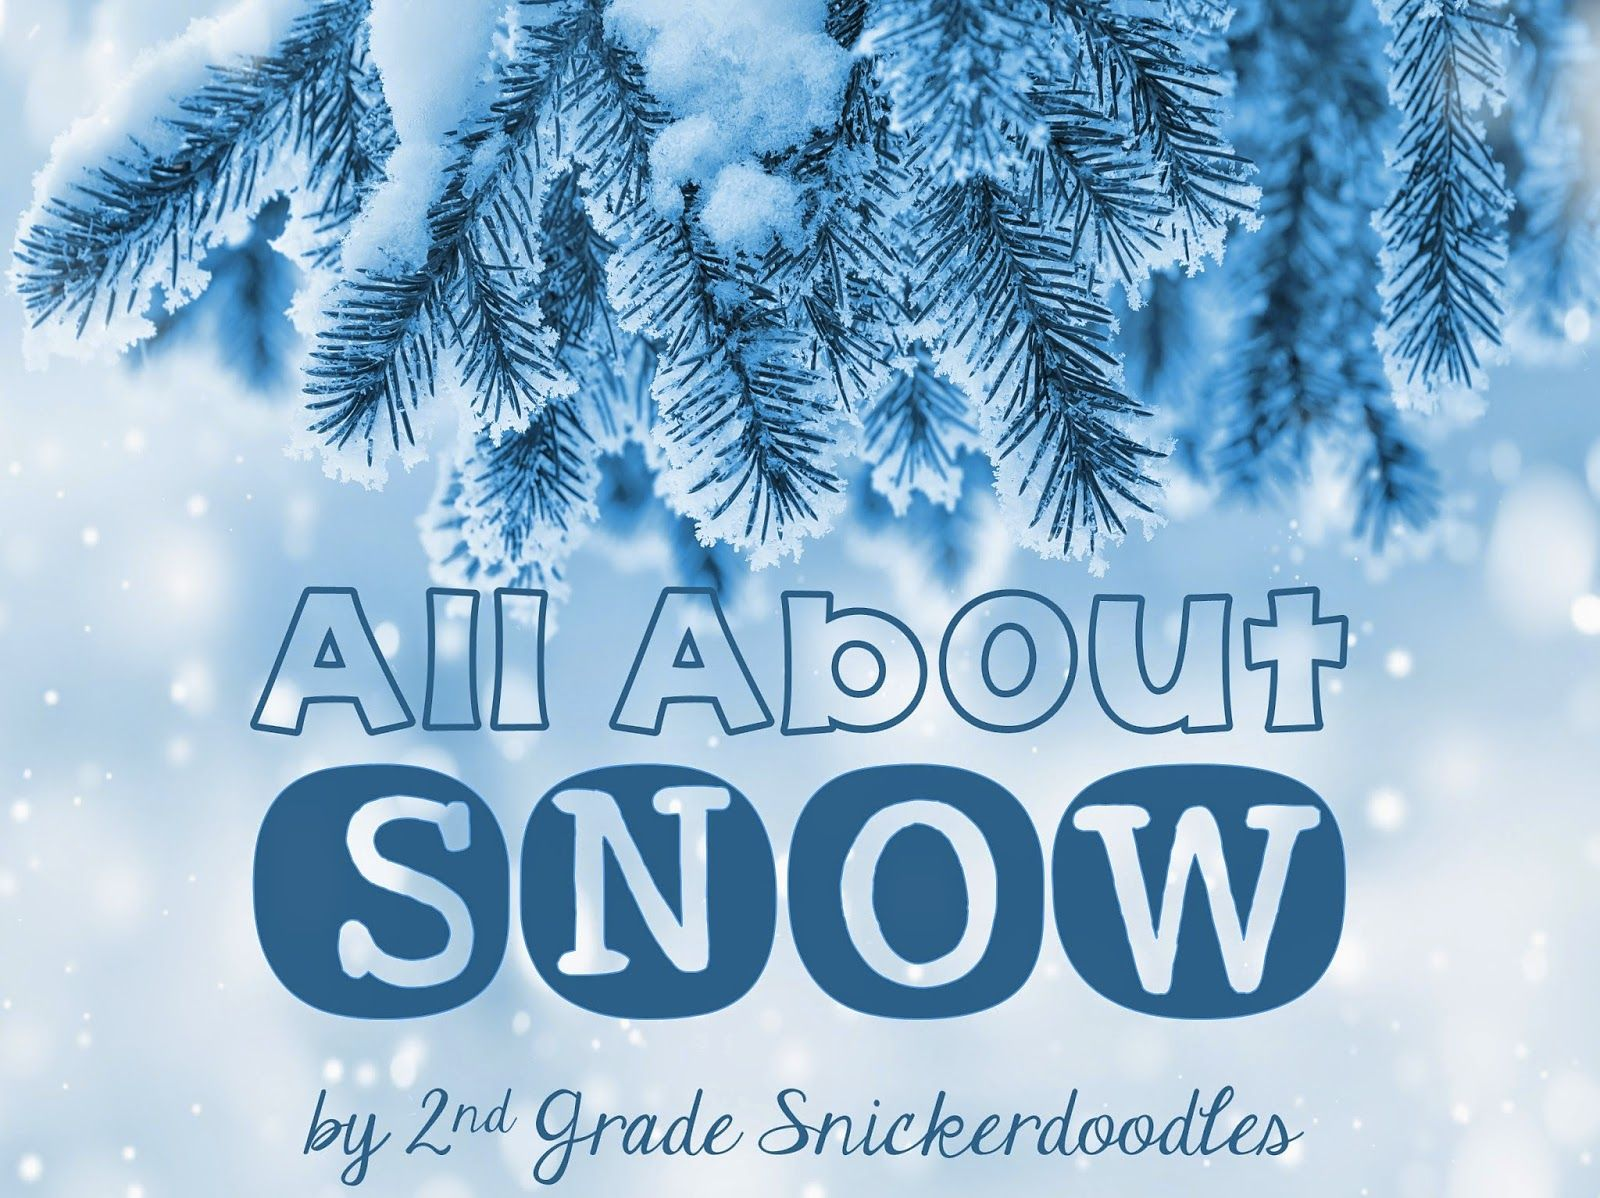 2nd Grade Snickerdoodles All About Snow Giveaway